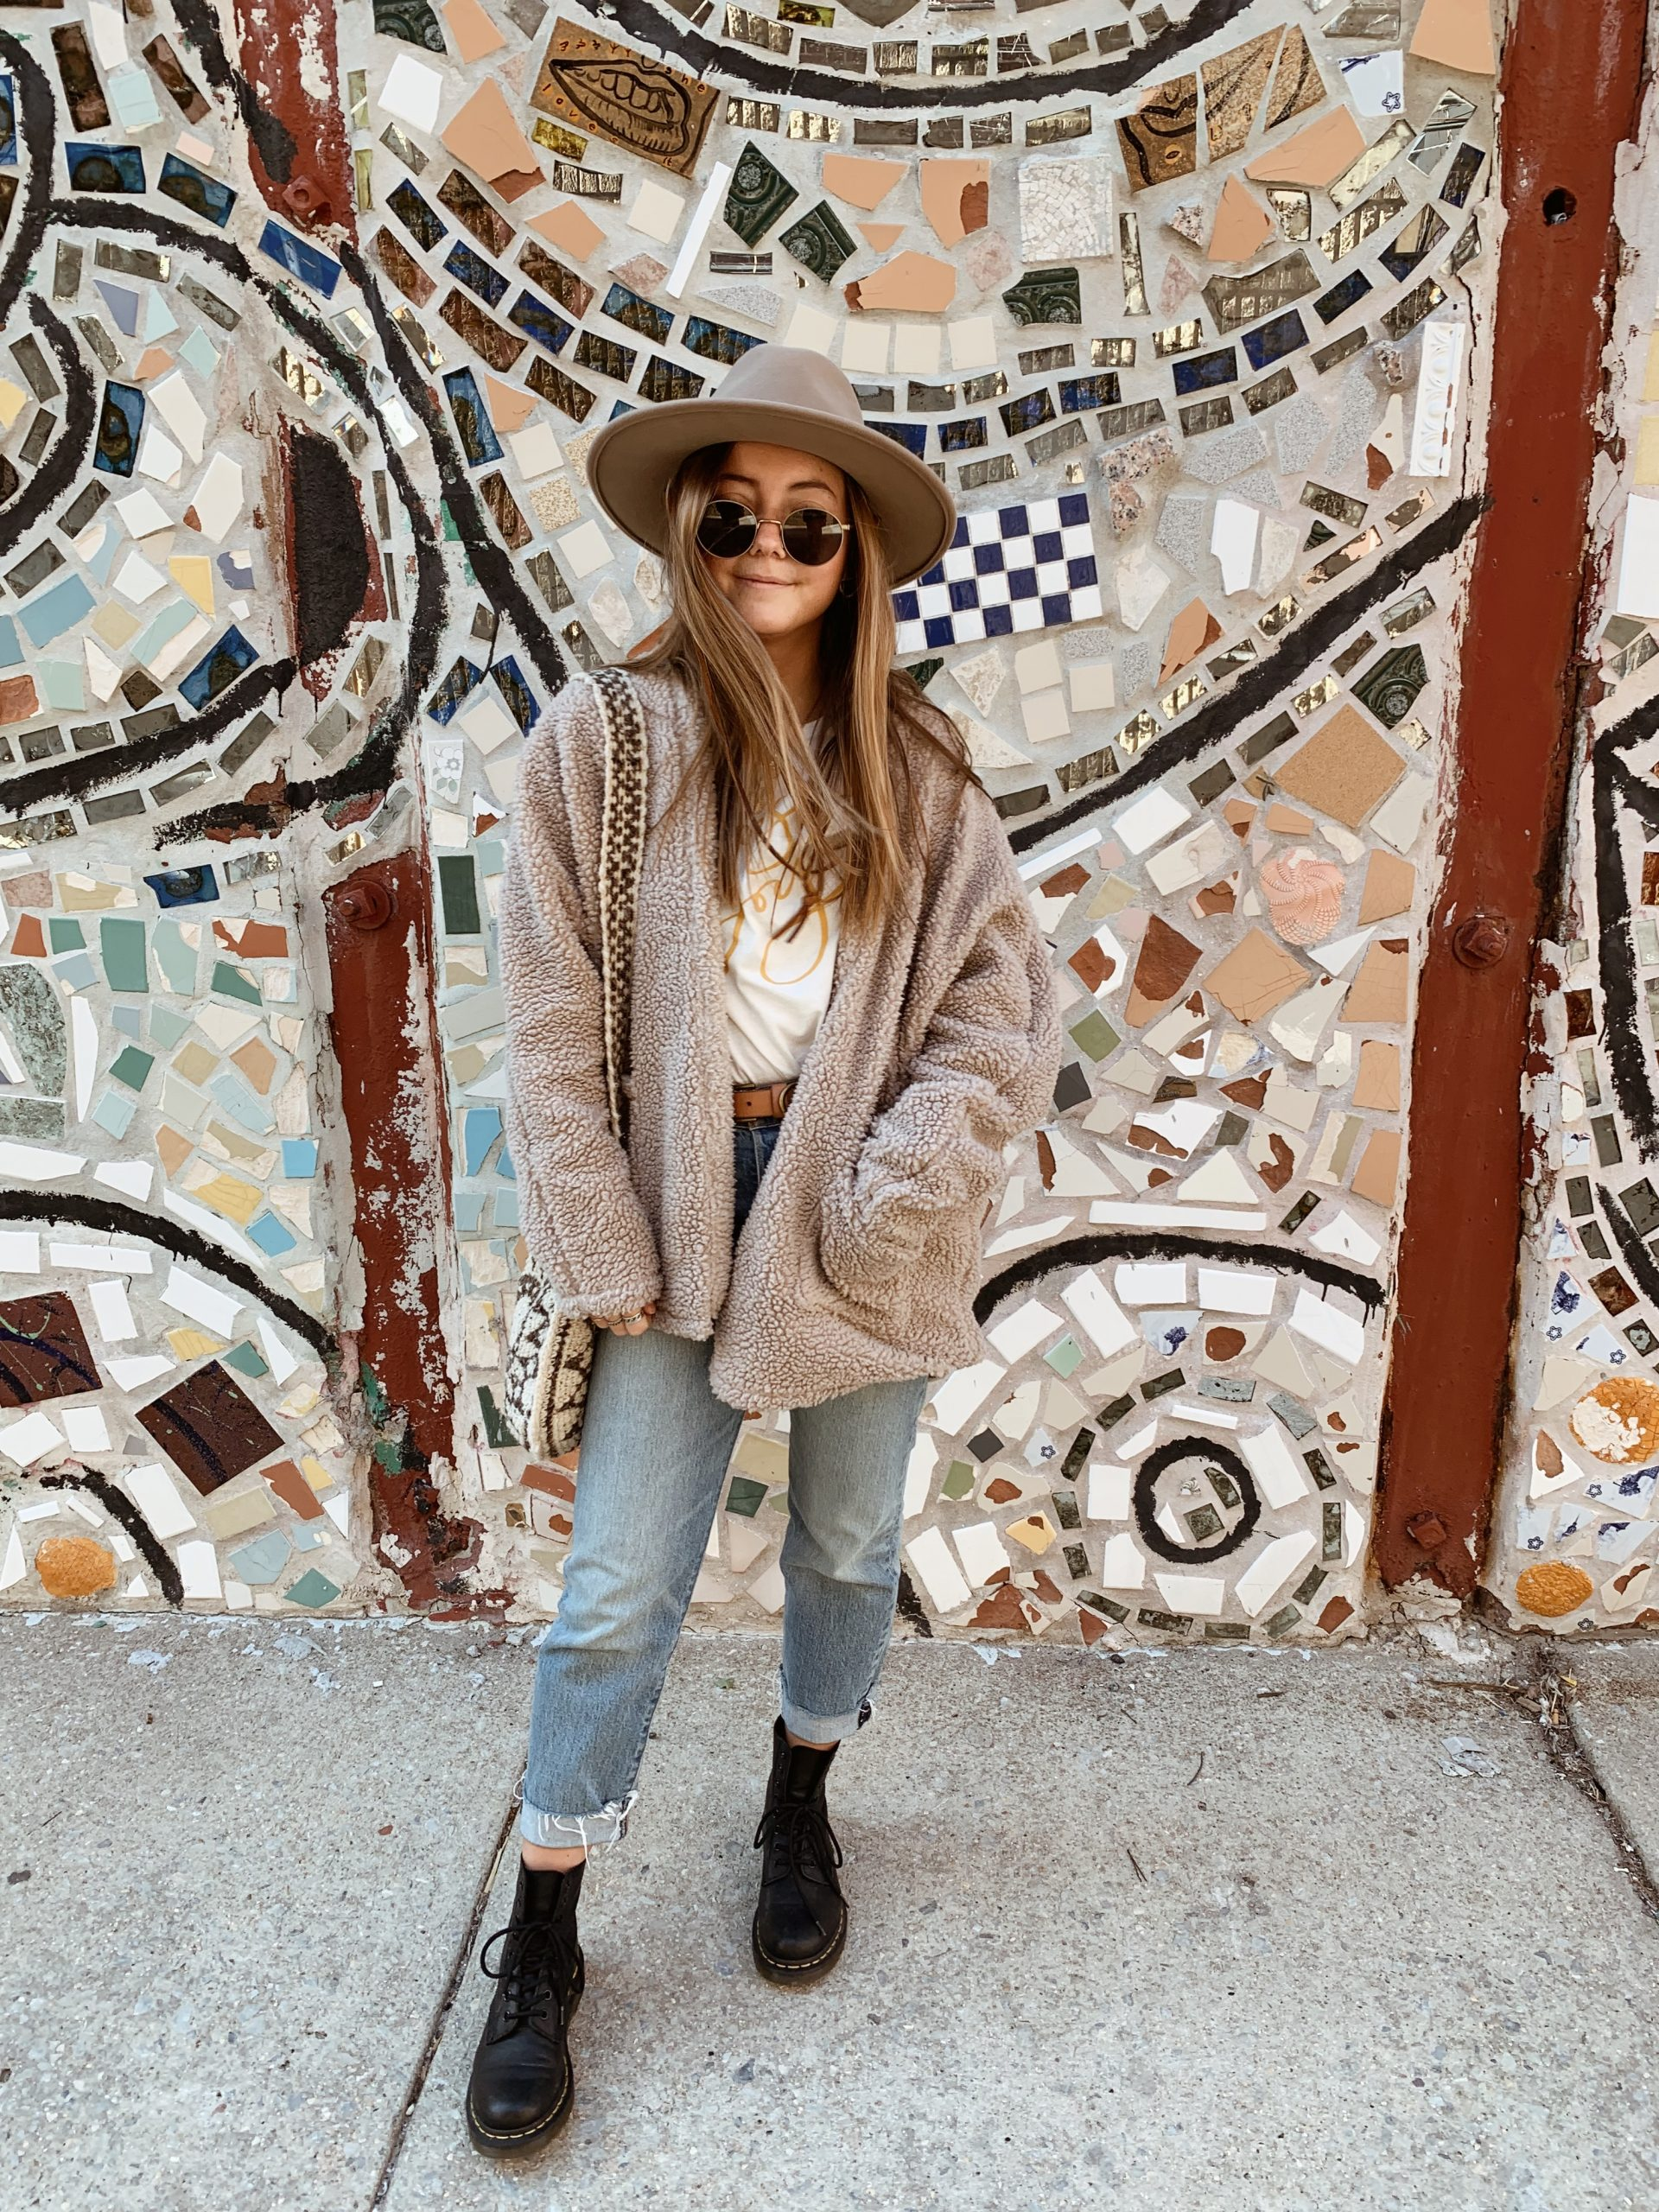 philly thrifting: my fav thrifting spots in the city